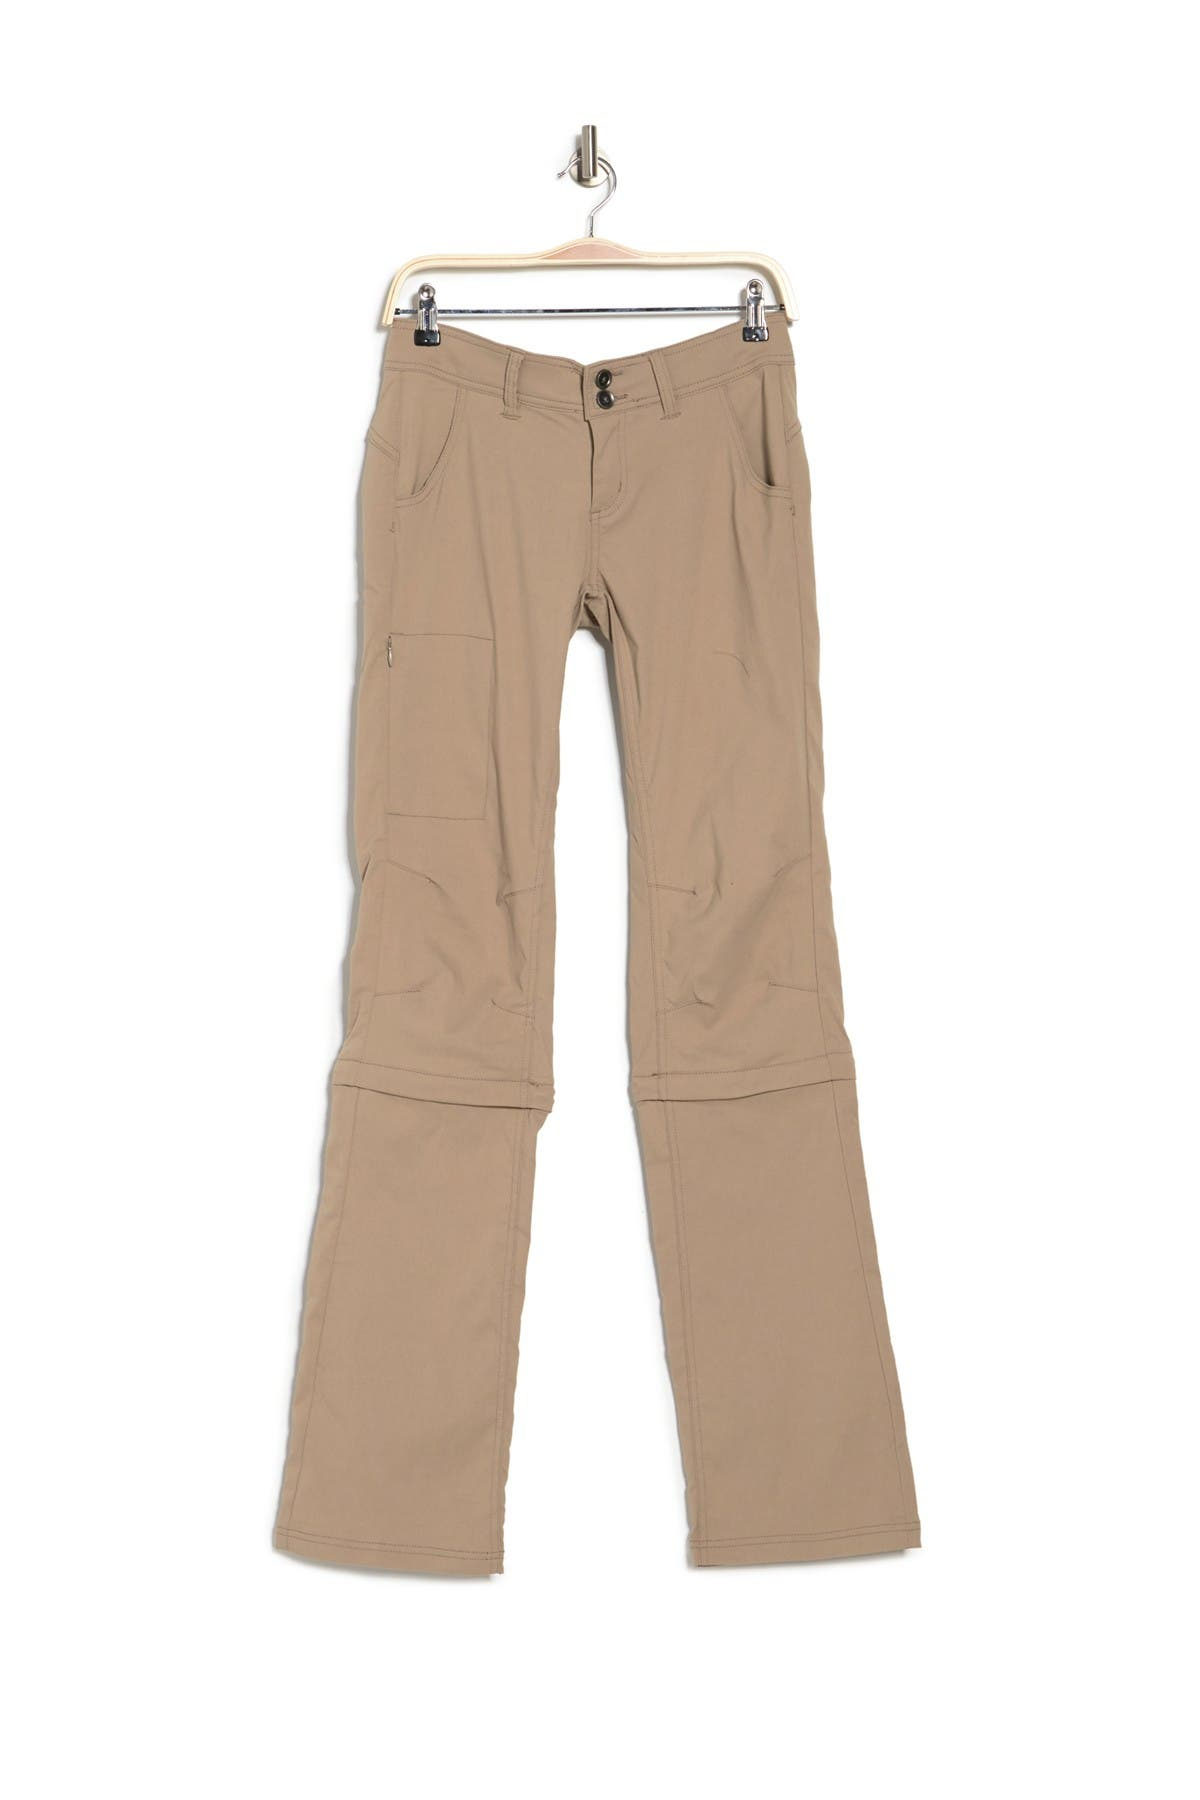 Image of Prana Halle Convertible Pant Long